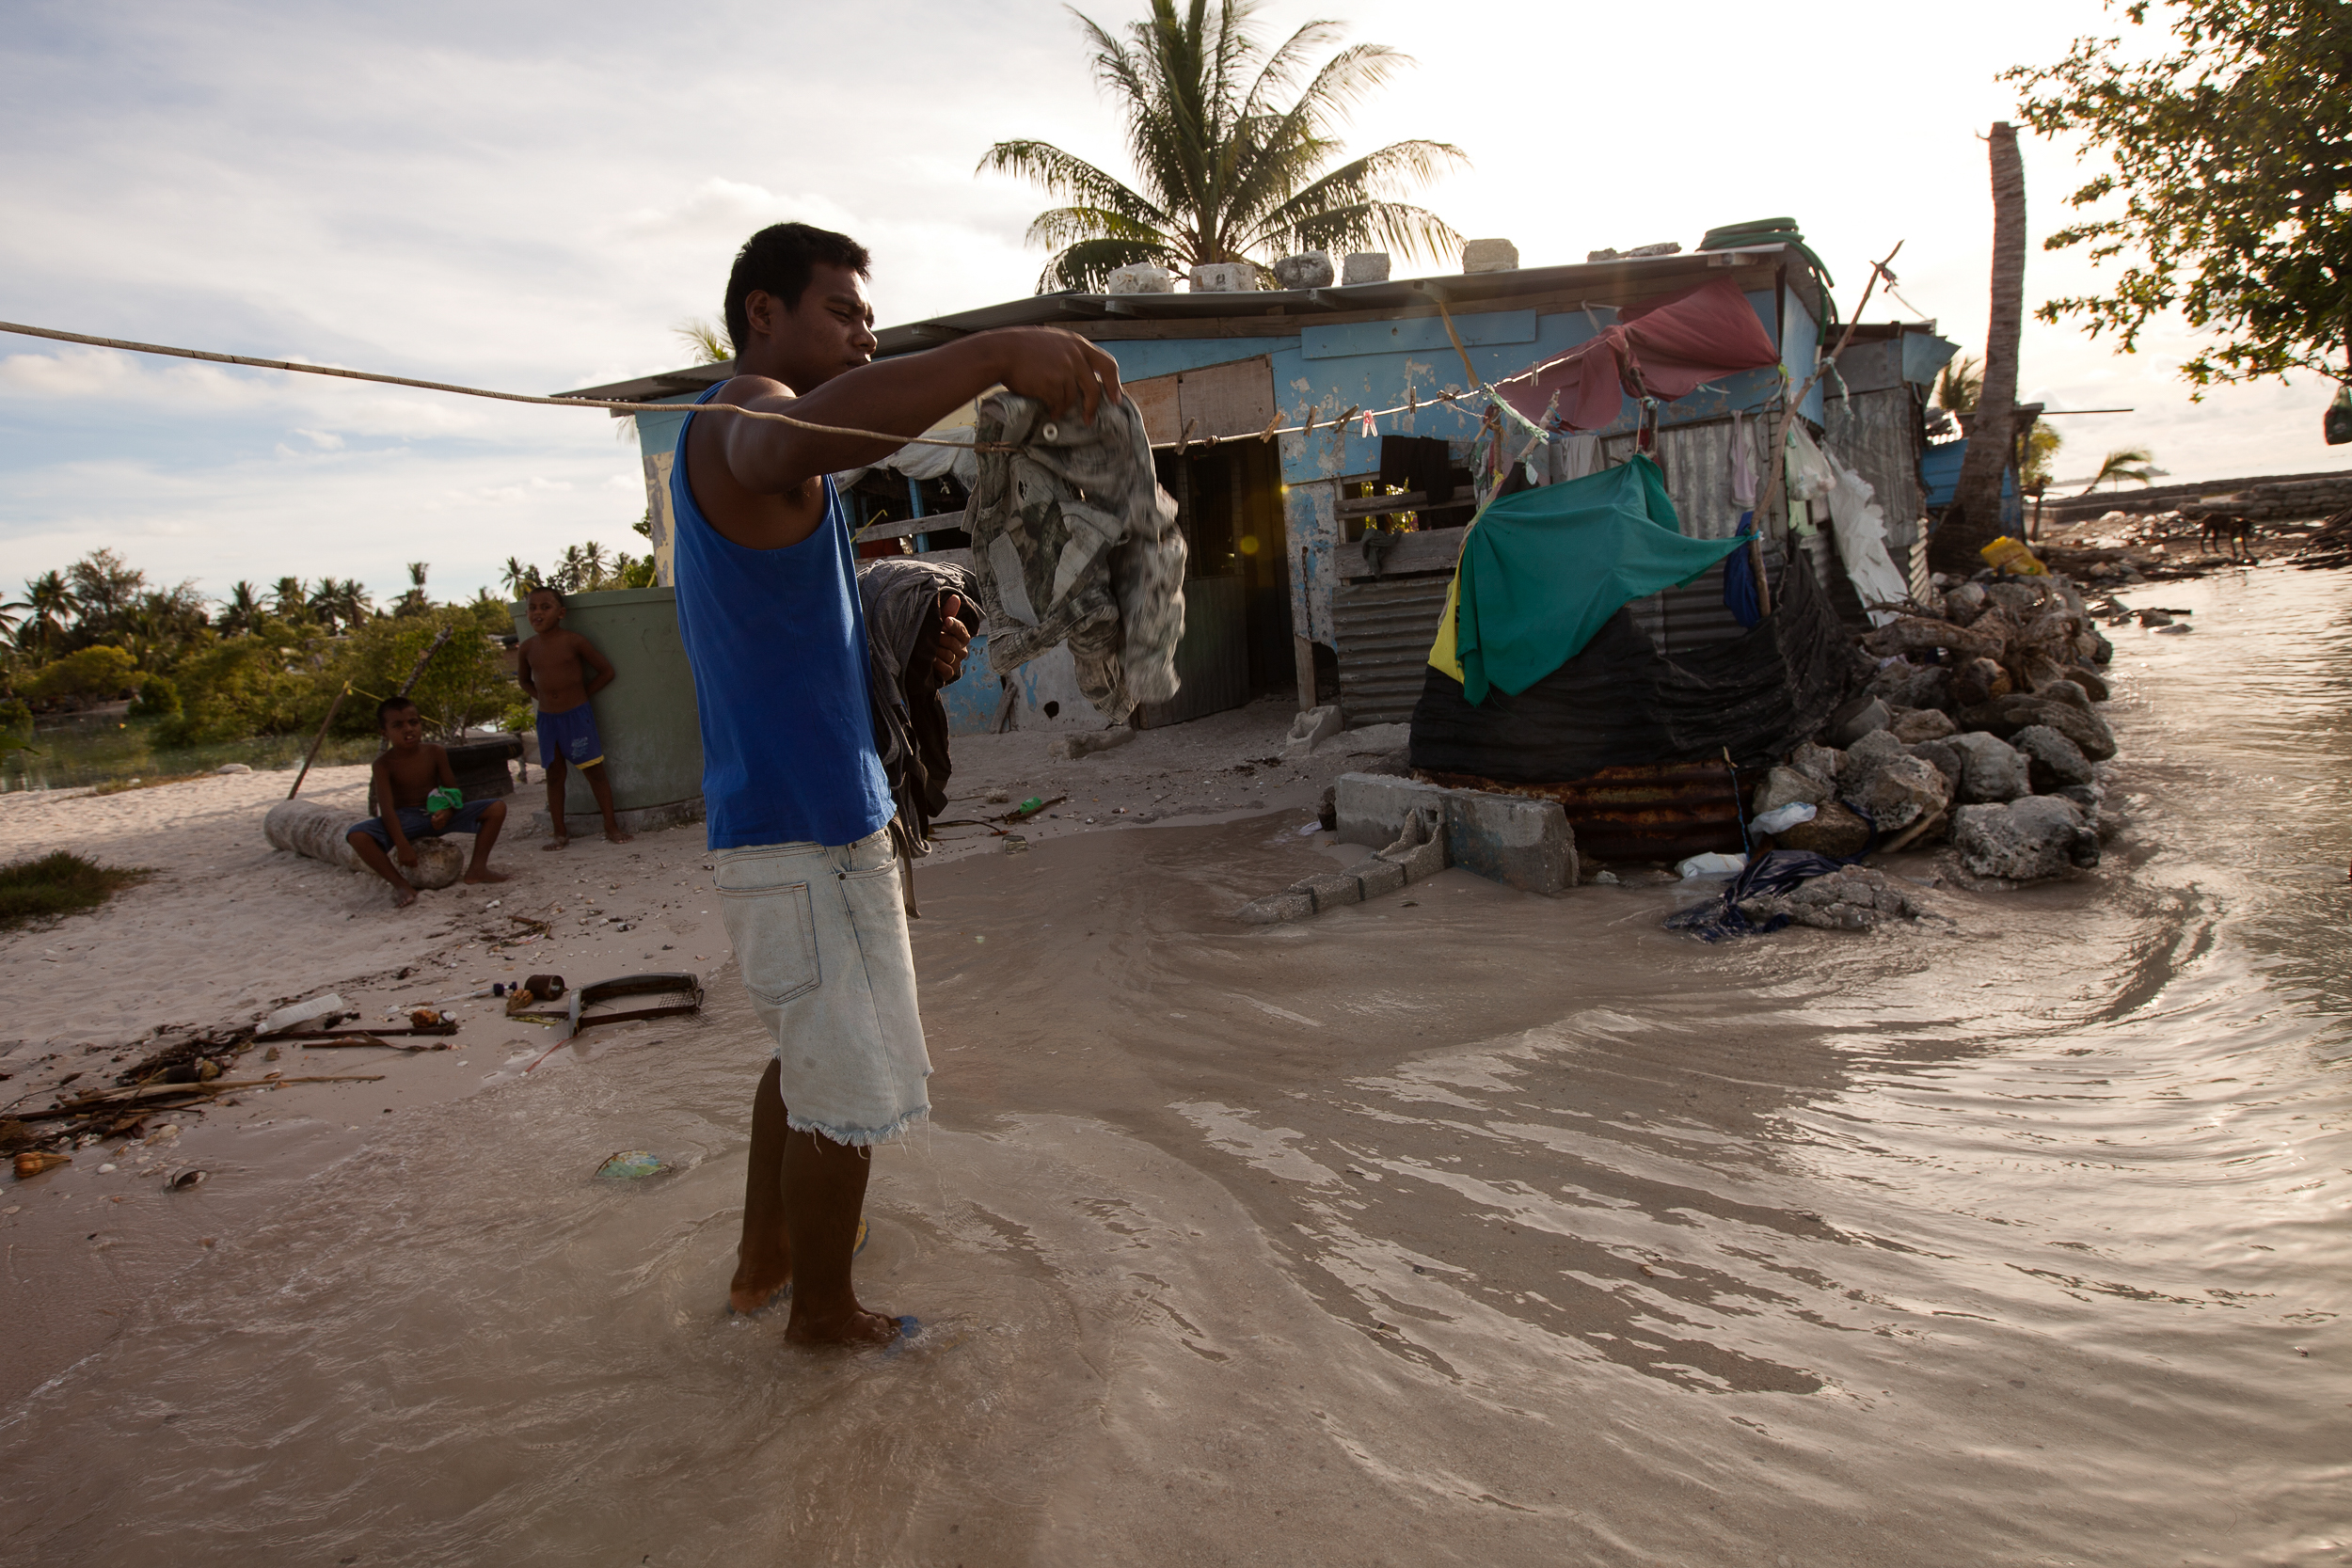 Tokeman Tekaakau brings in his washing as the waves lap around his ankles next to his house in Golden Beach. Tokeman said there used to be three more houses in front of his that had to be pulled down and relocated because the ocean continuously eroded the land away from under them.